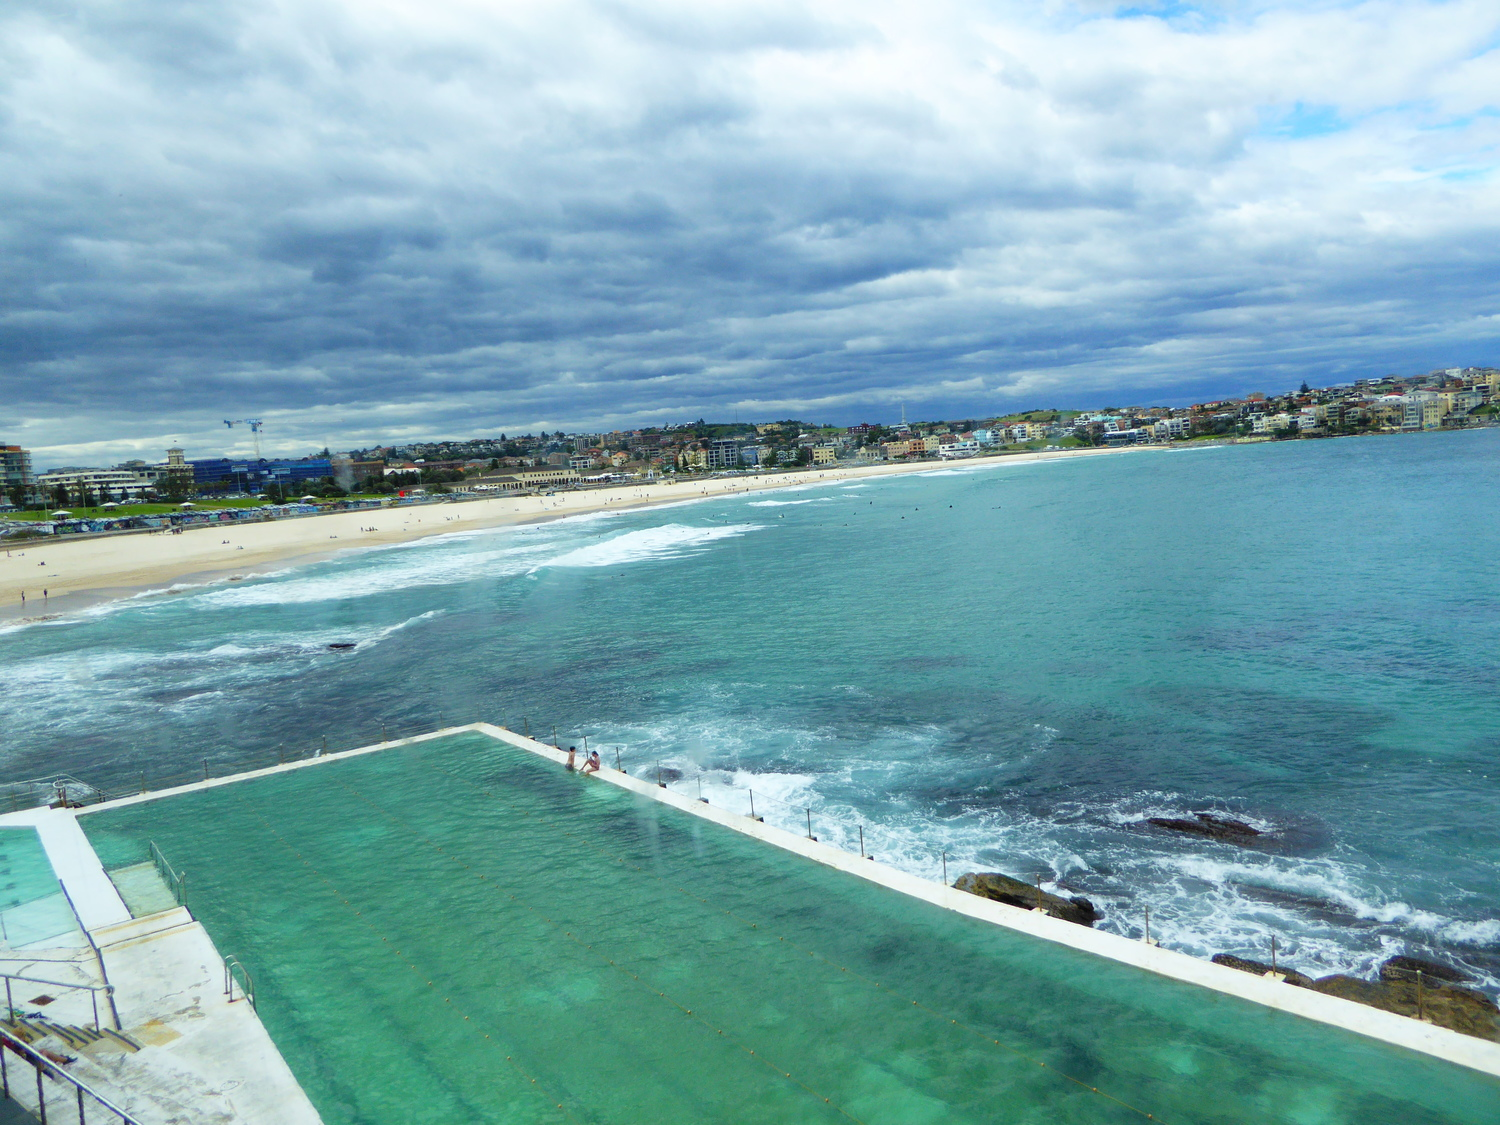 Icebergs Restaurant view, Bondi Beach